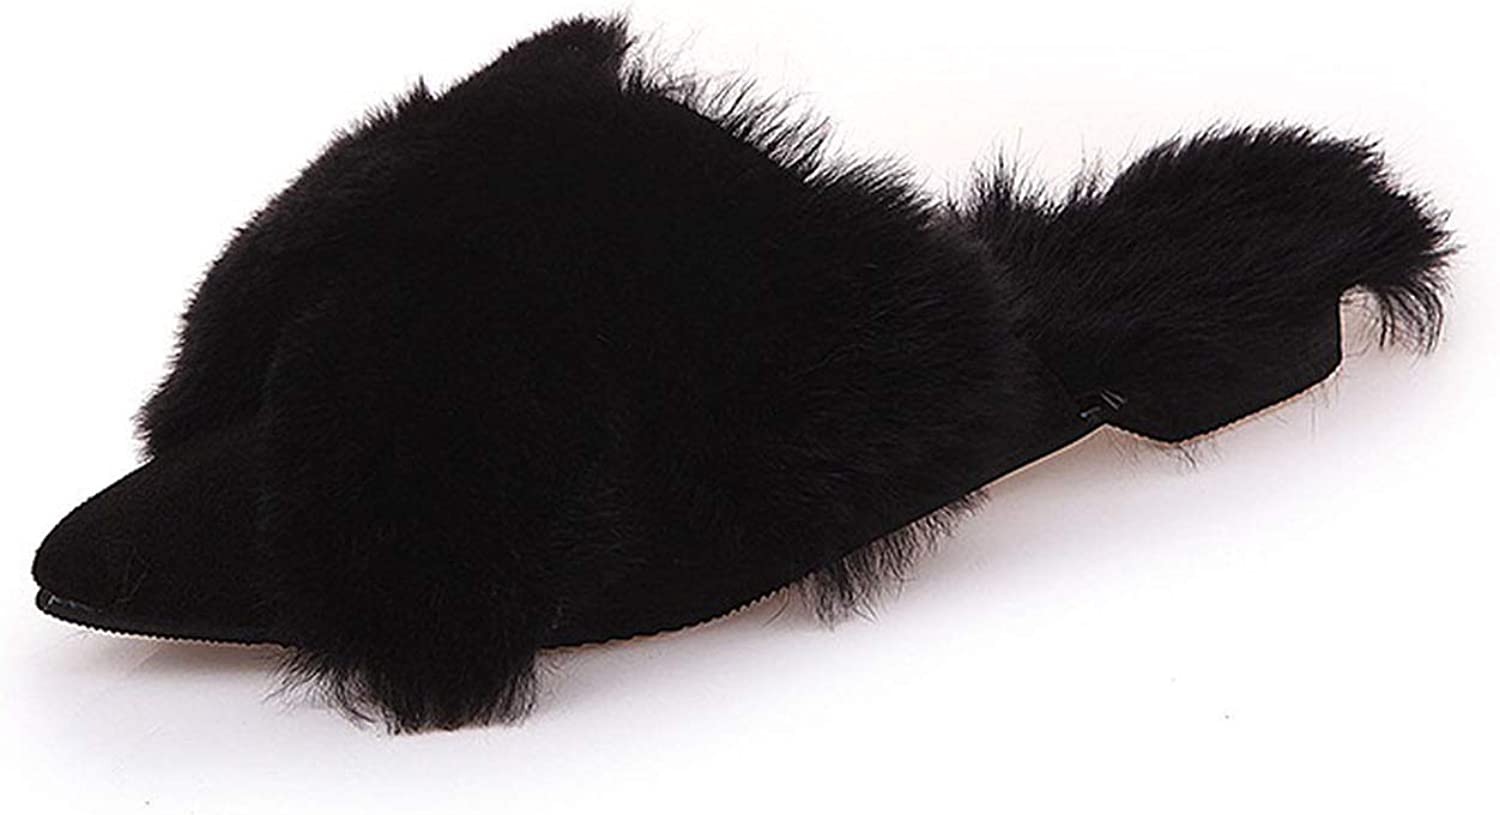 colorful Dream- Luxury Natural Genuine Hairy Ladies Cute Plush Fox Hair Fur Slippers Winter Warm Slippers